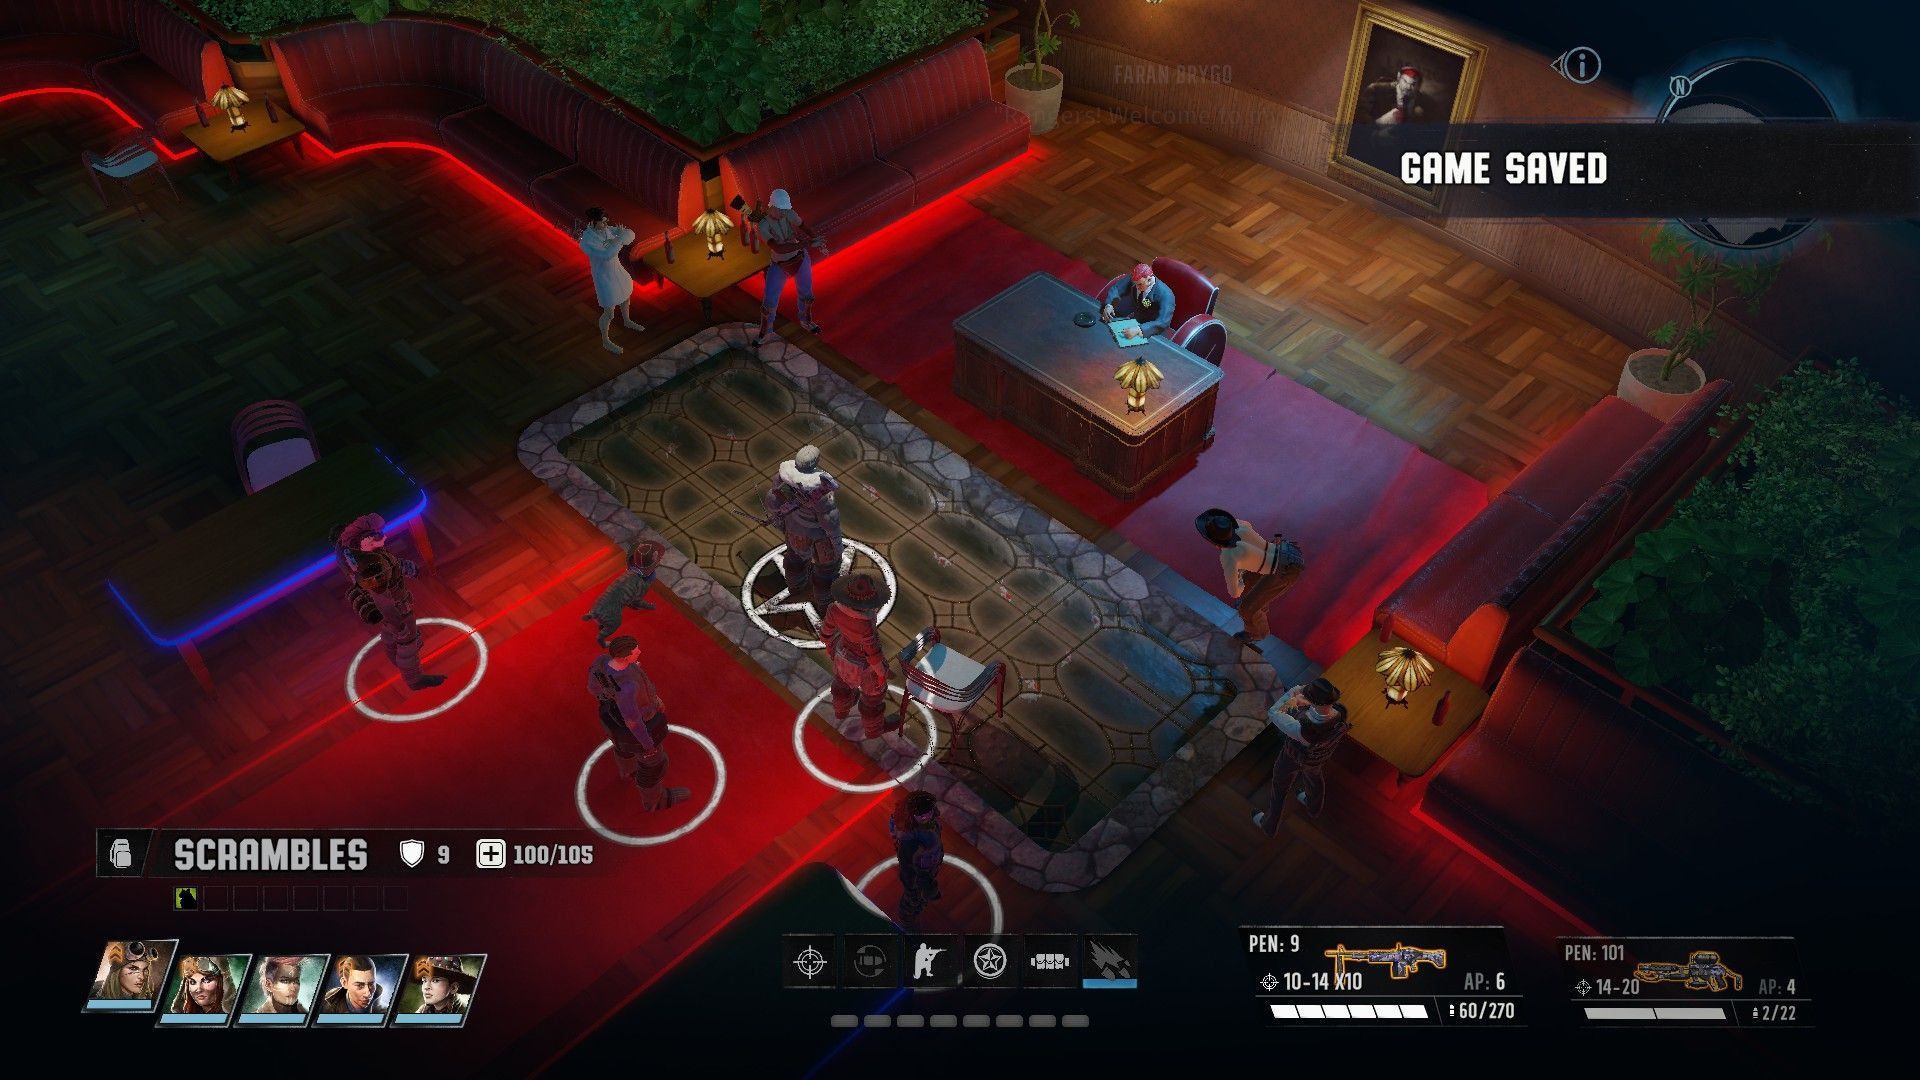 A screenshot from Wasteland 3 showing the players squad standing in what looks like a swanky restaurant or bar. It is red lit and there is a man sitting behind an imposing desk in the middle of the room.